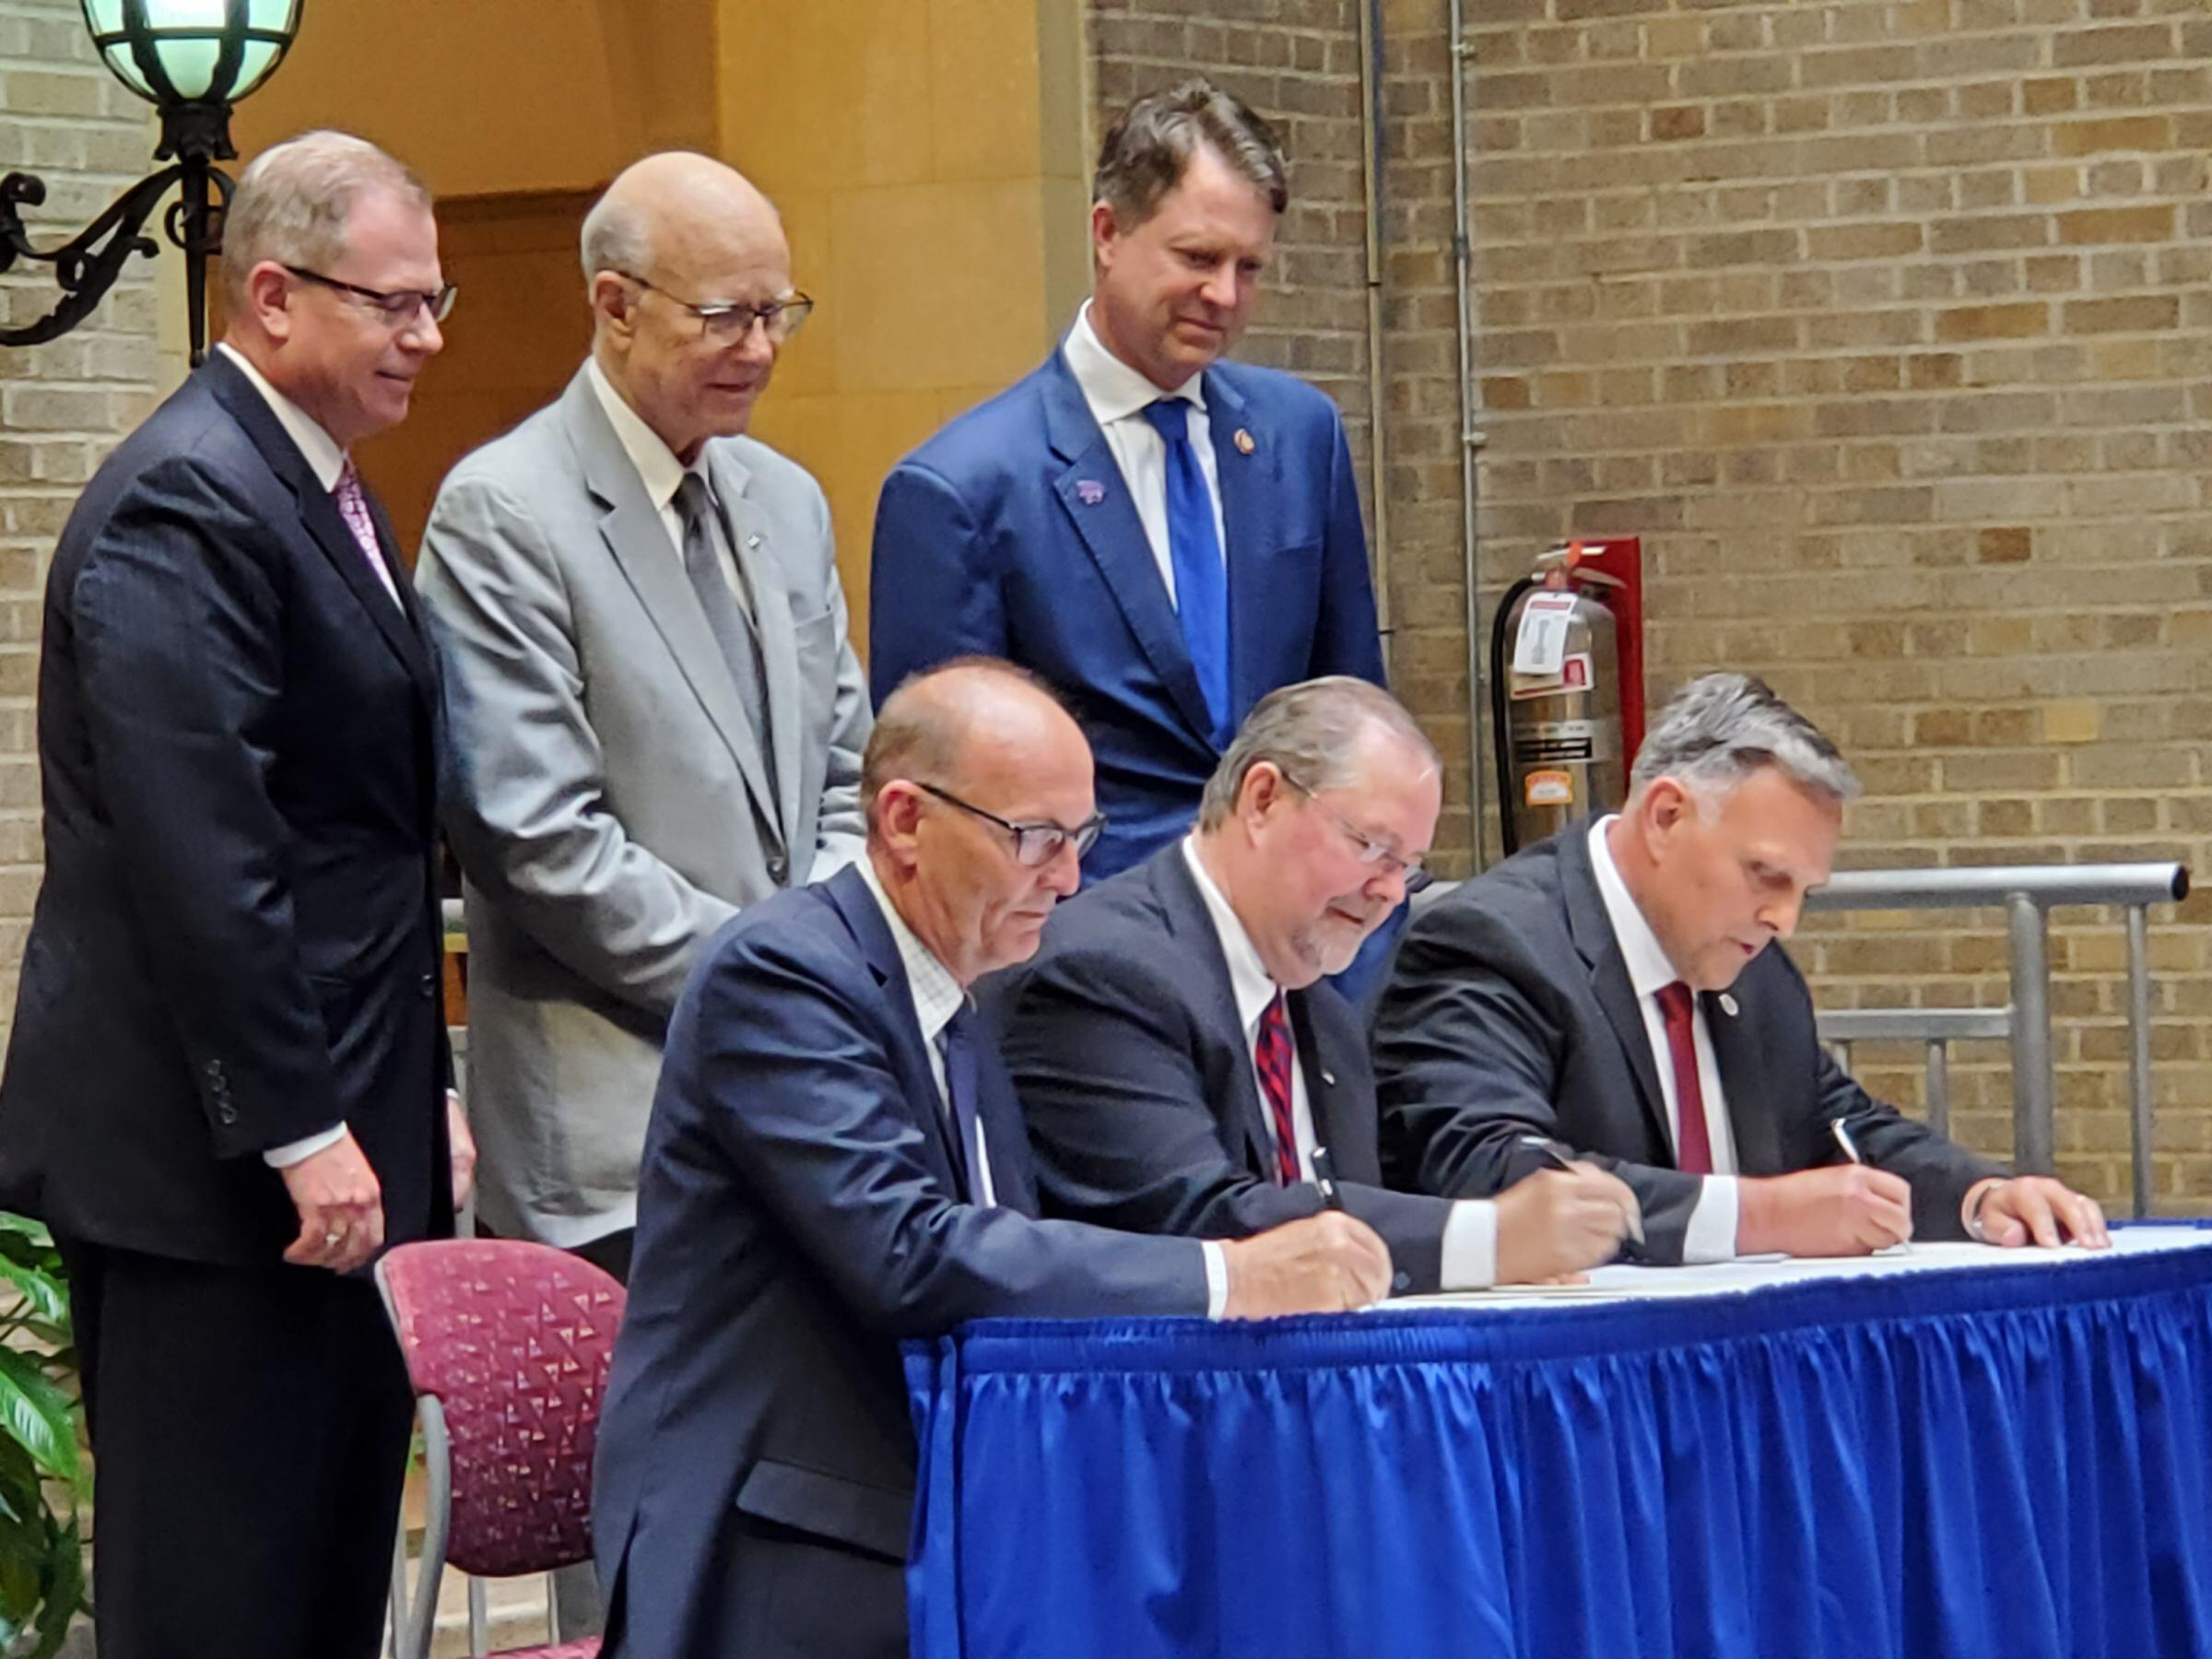 The agreement was signed by USDA Under Secretary for Marketing and Regulatory Programs Greg Ibach, USDA Deputy Under  Secretary for Research, Education, and Economics Scott Hutchins, and DHS Senior Official Performing the Duties of the Under Secretary for Science and Technology William Bryan